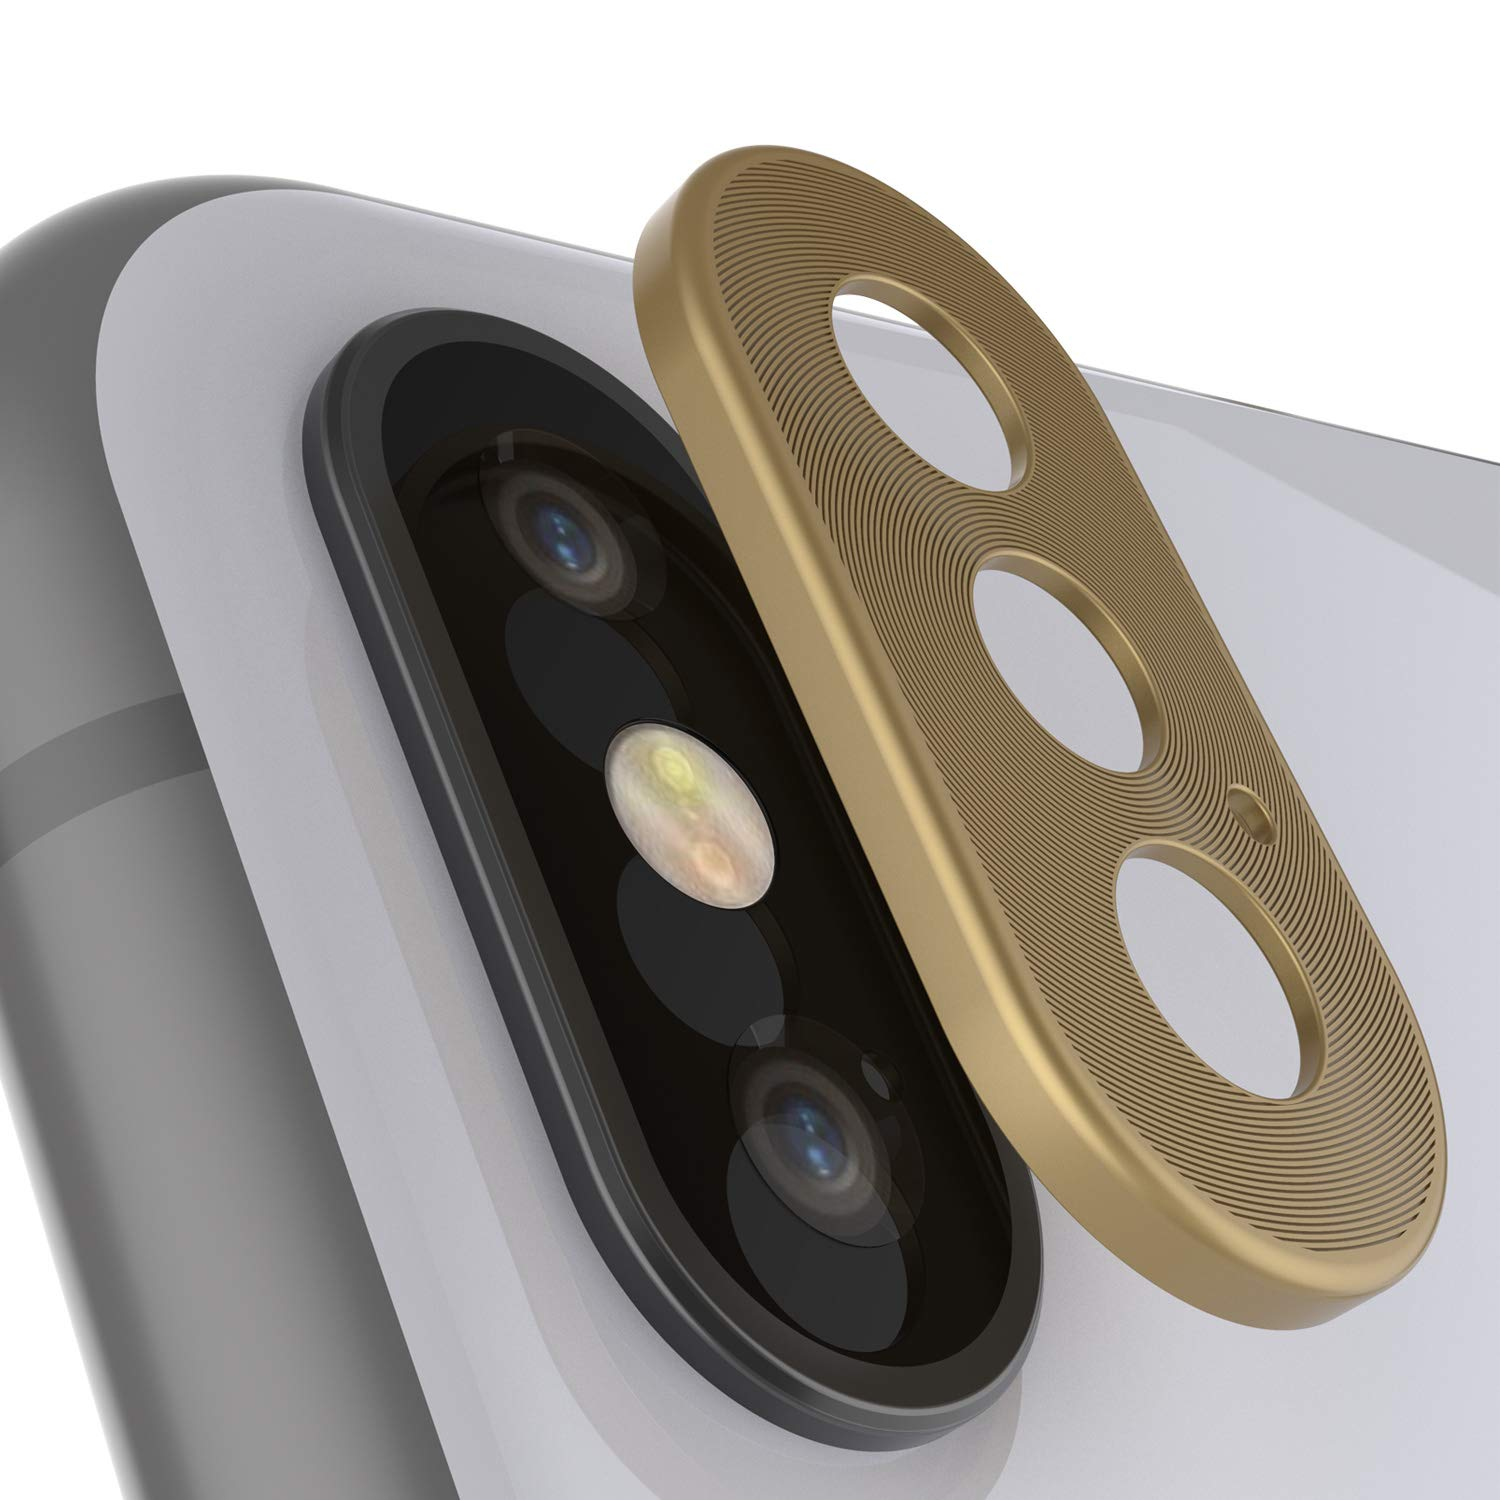 Punkcase iPhone XS Max Camera Protector Ring [Gold]